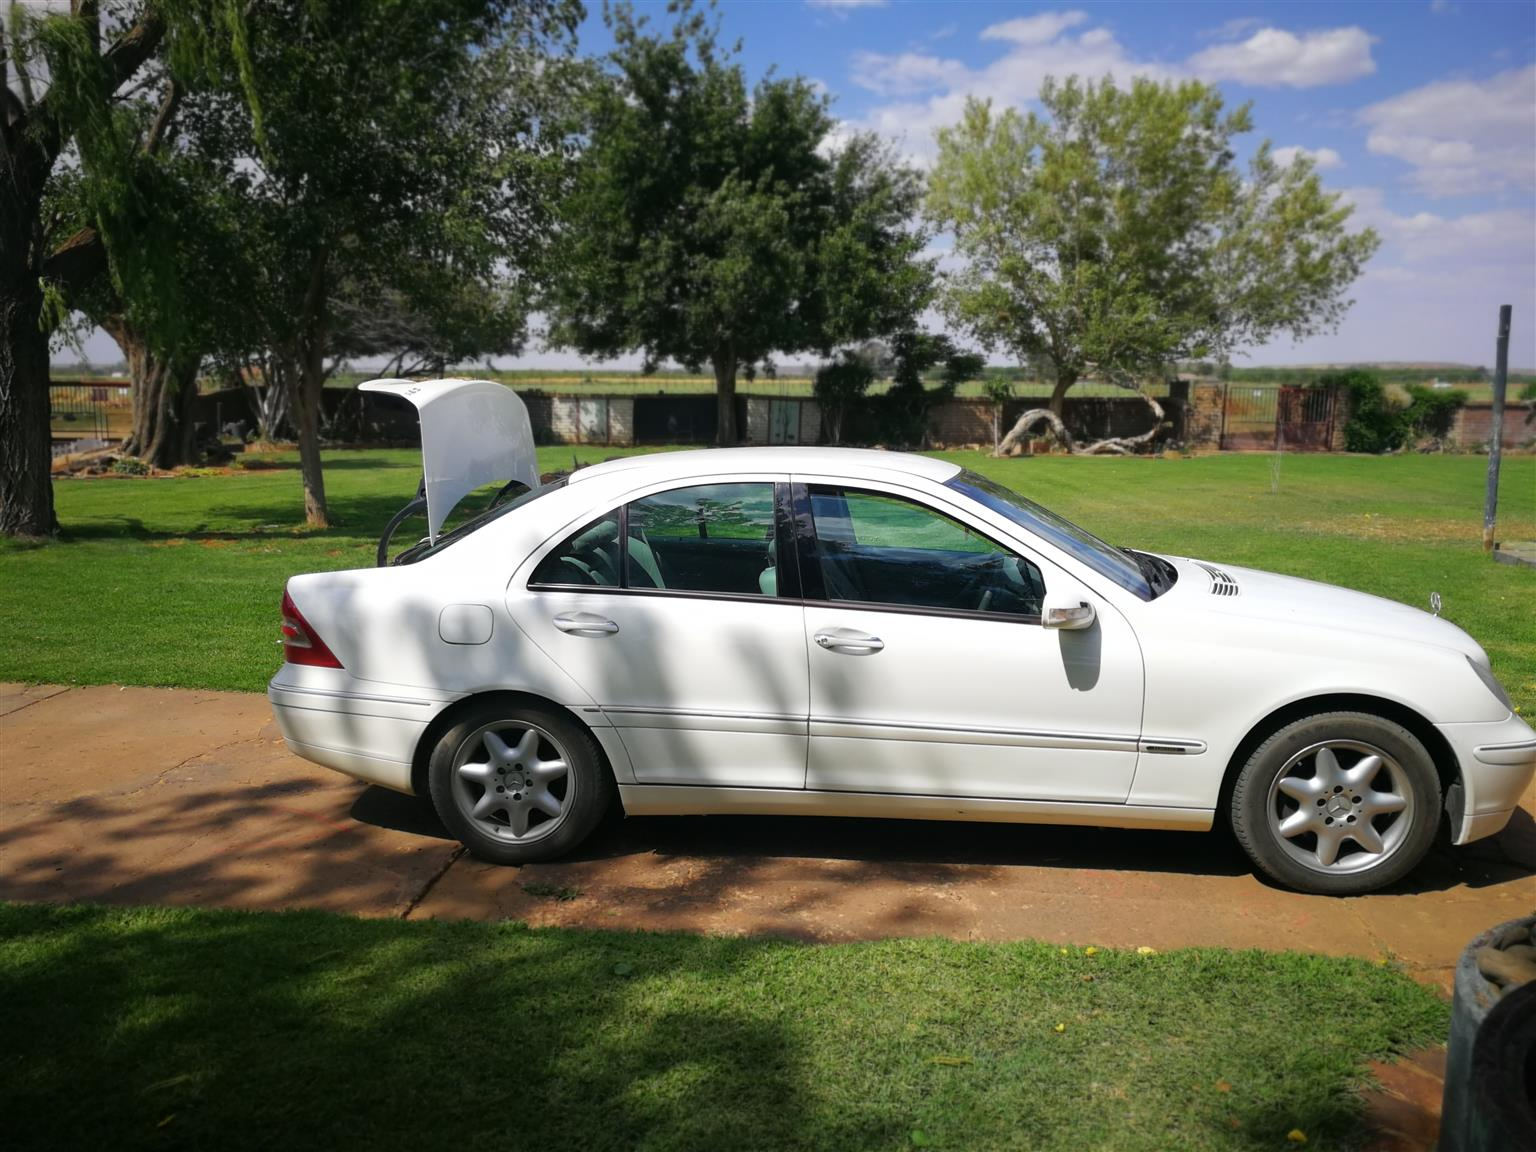 Mercedes C270 2002 model good condition daily runner